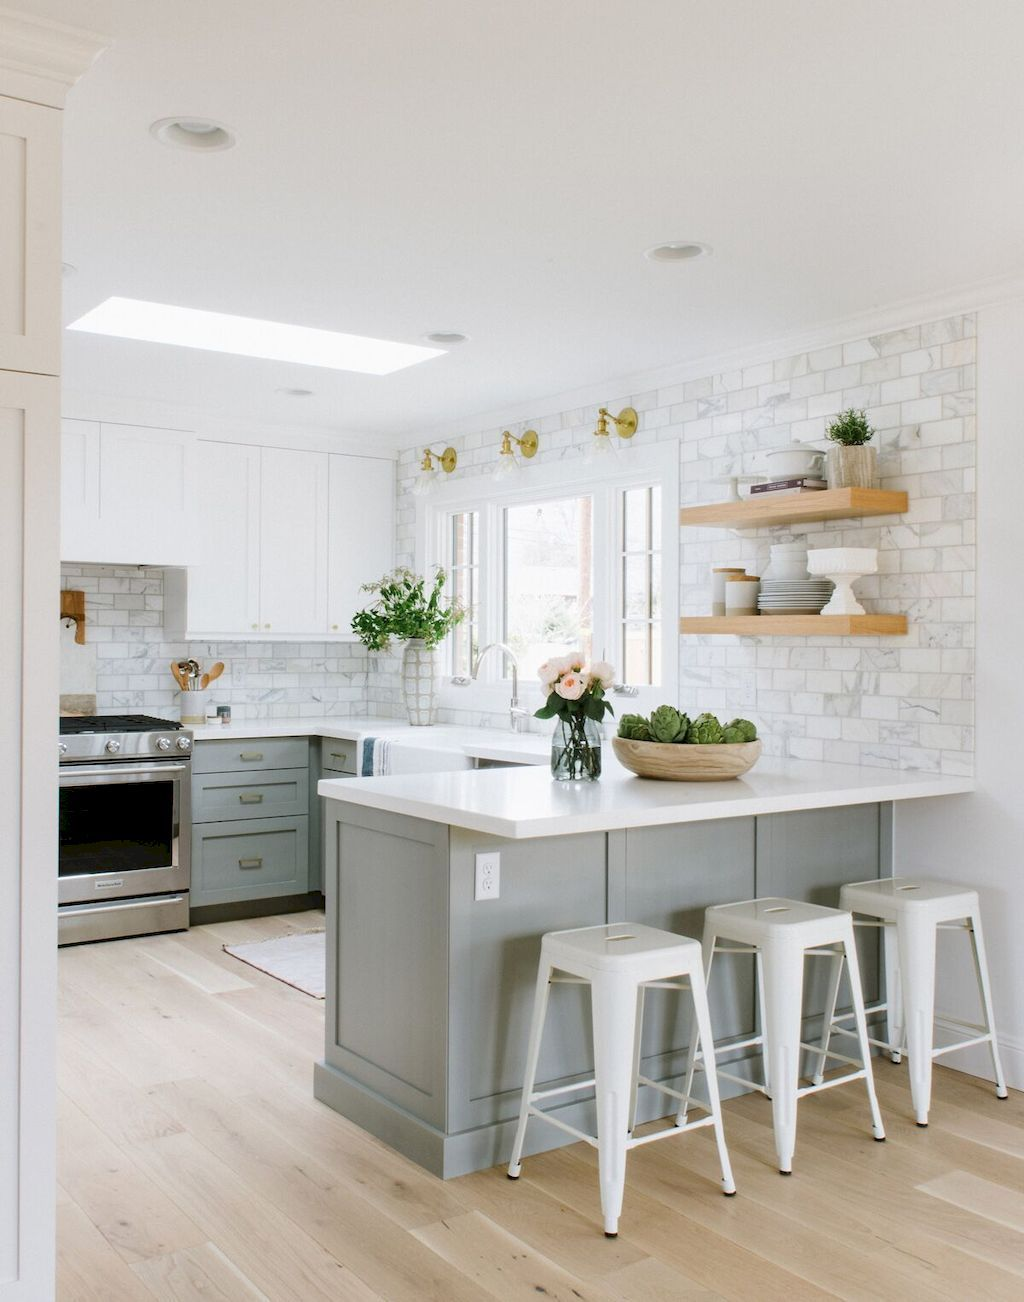 90 Inspiring Small Kitchen Remodel Ideas  Kitchens House And Glamorous Small Kitchen Remodels Design Inspiration